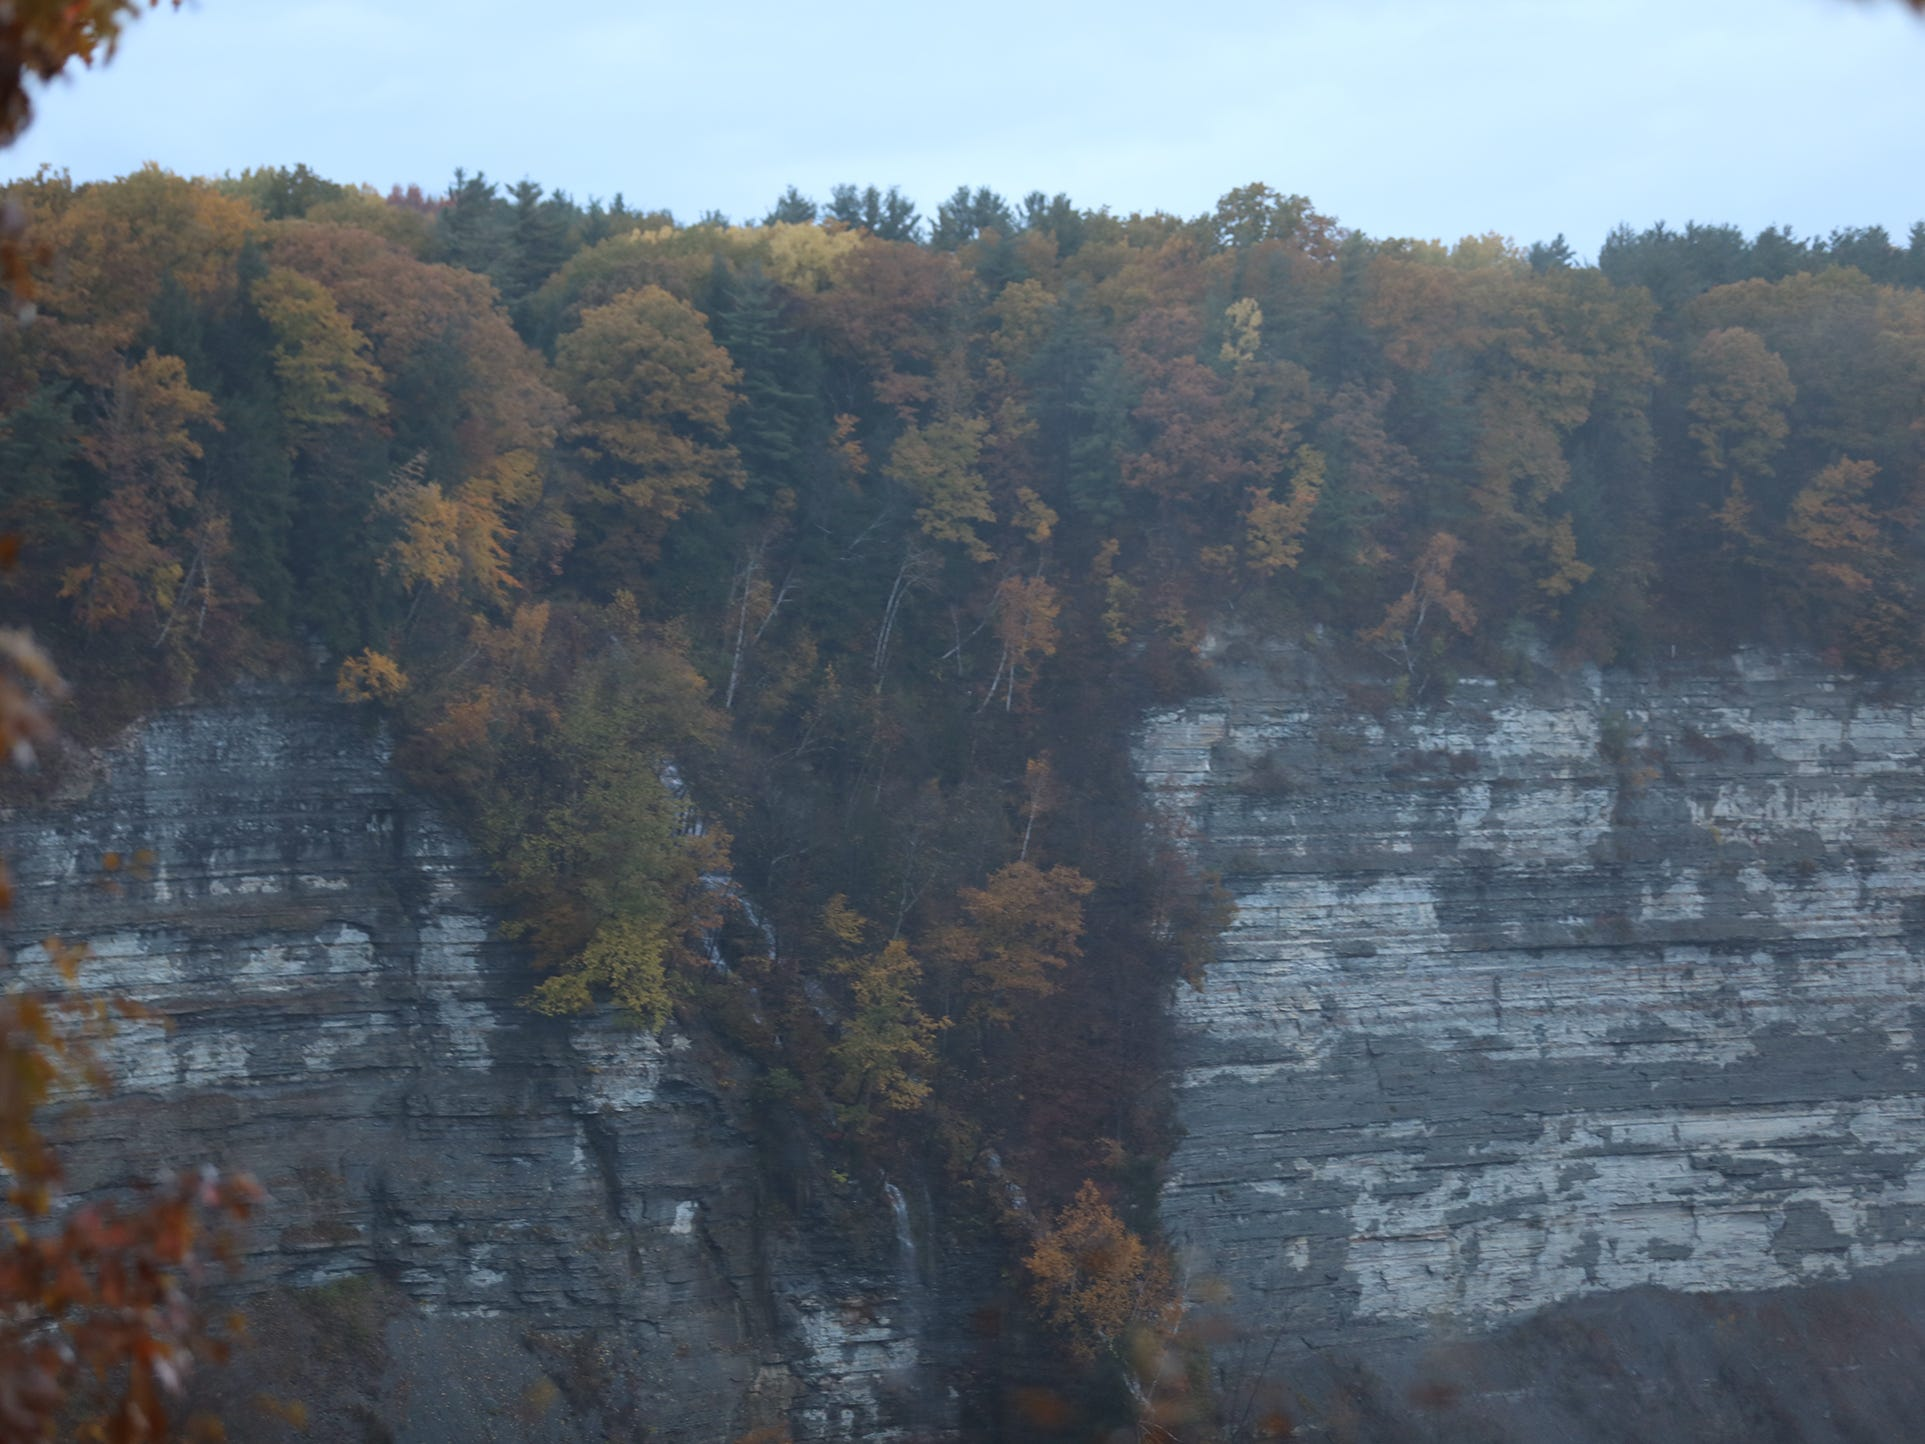 Even trees in the crevasses of the gorge at Letchworth State Park changed colors.